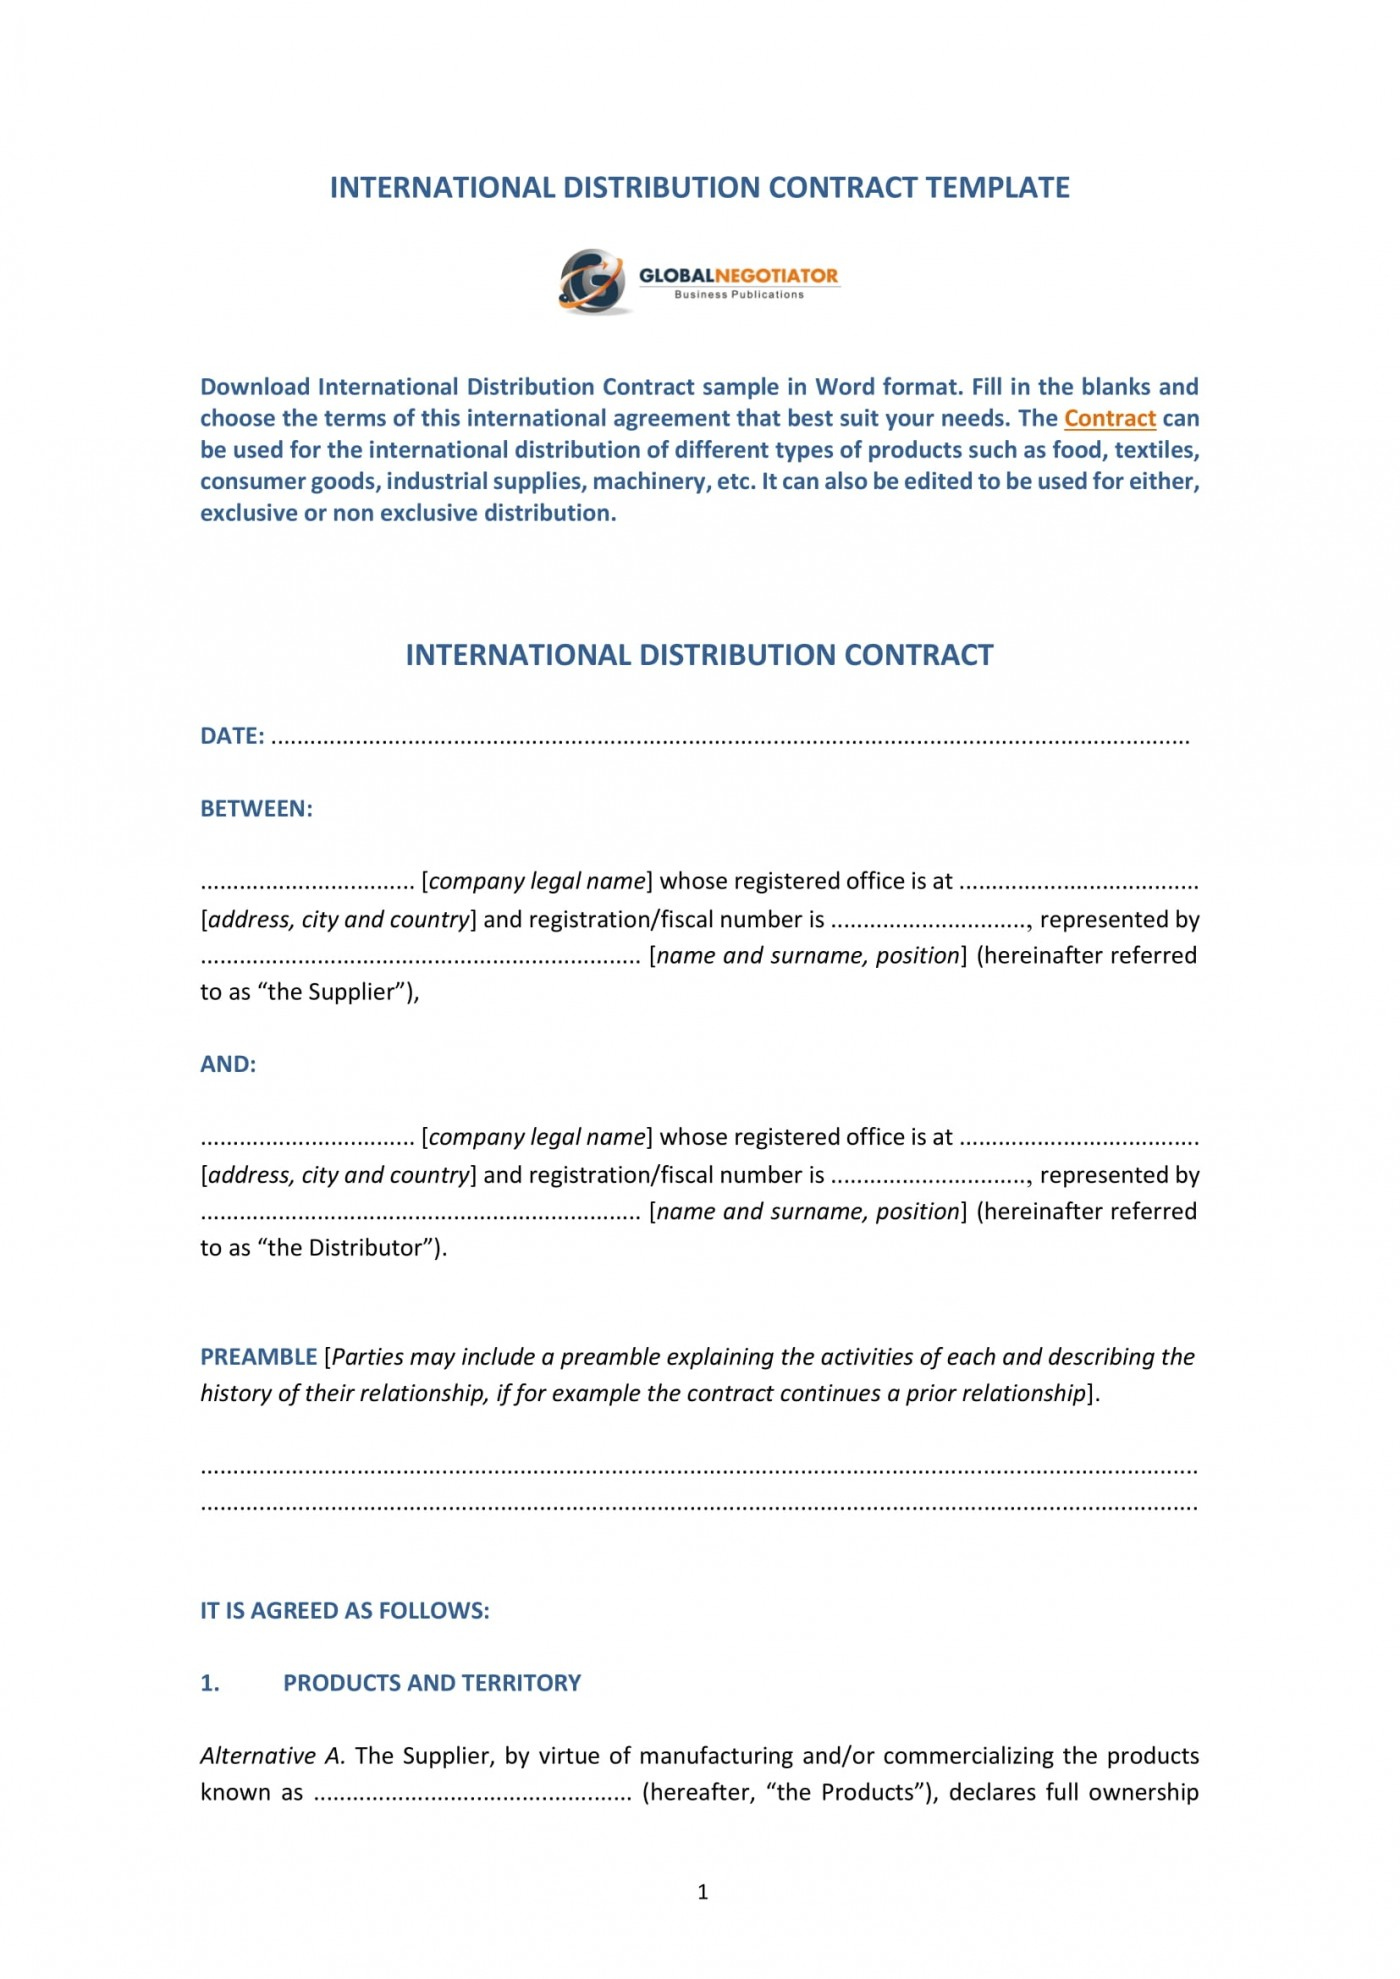 009 Amazing Distribution Agreement Template Word Image  Distributor Exclusive Contract1400